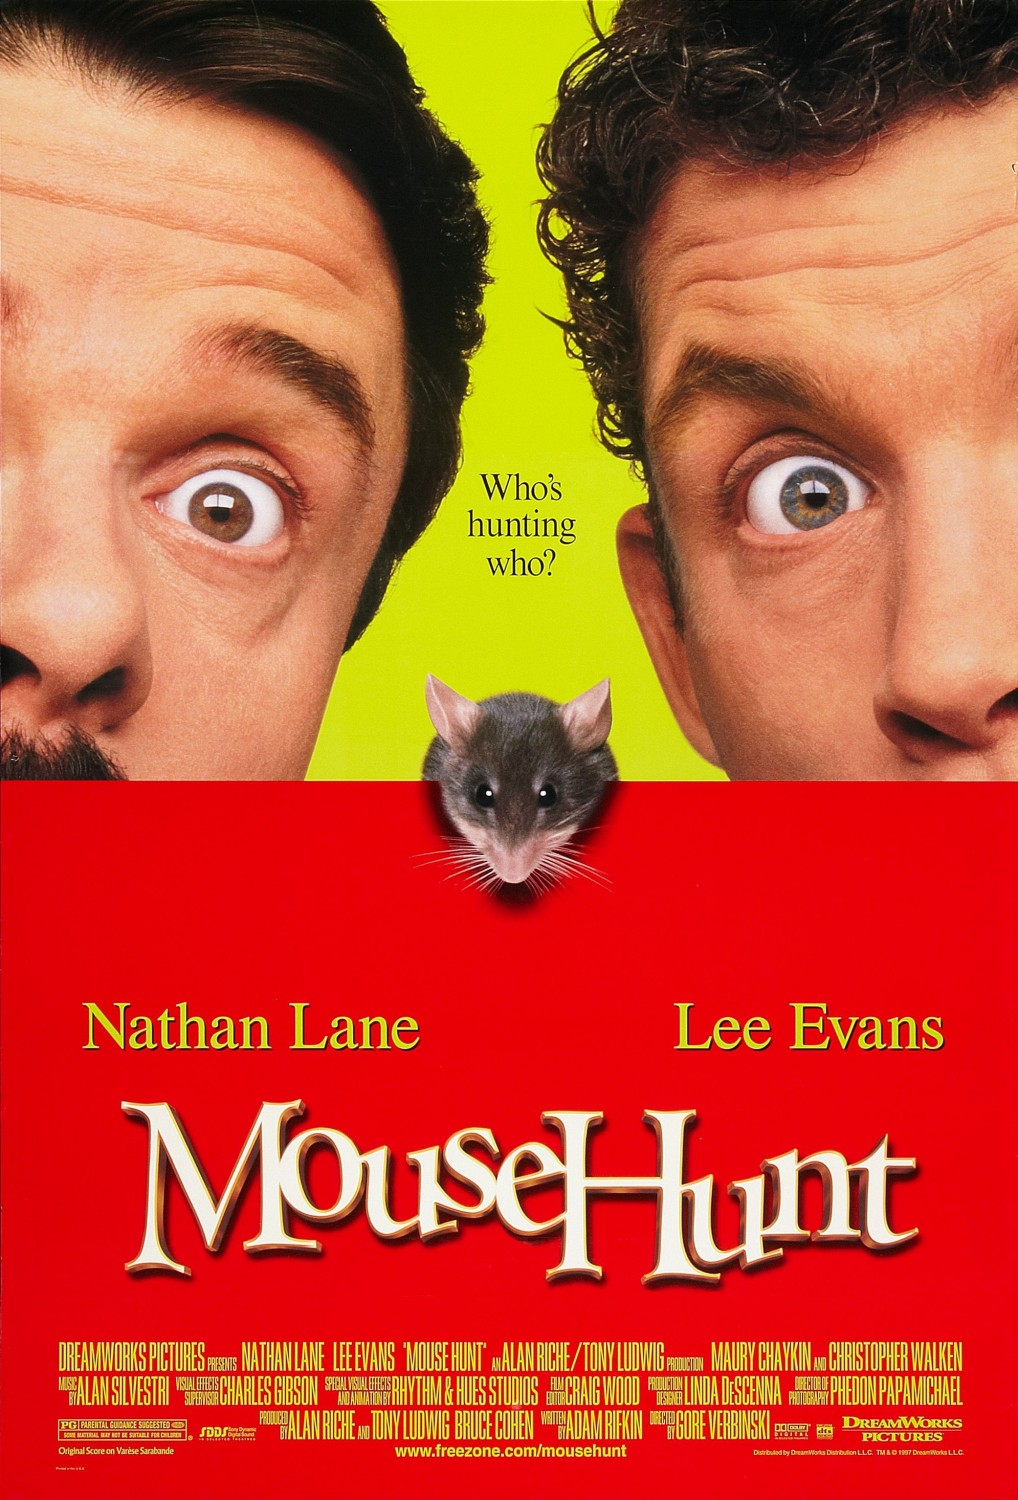 The Adventures of Charlie Mouse: The Hunt